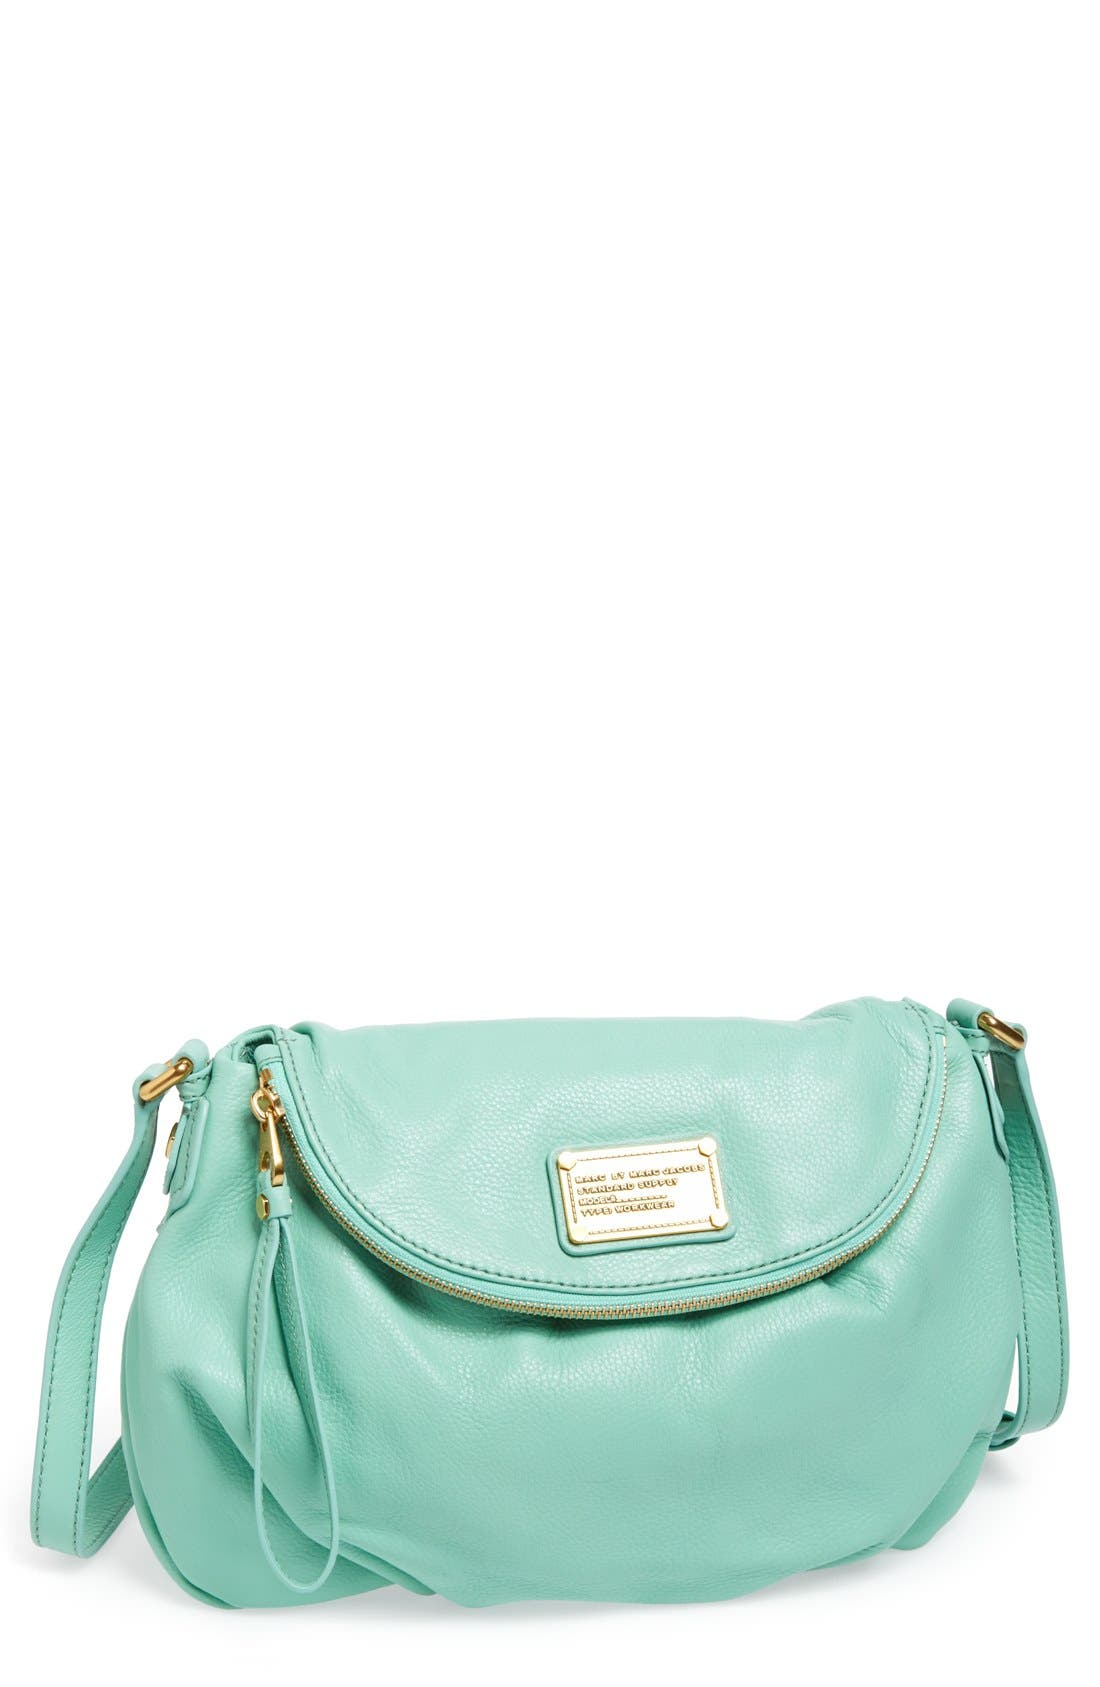 MARC BY MARC JACOBS 'Classic Q - Natasha' Crossbody Bag,                             Main thumbnail 9, color,